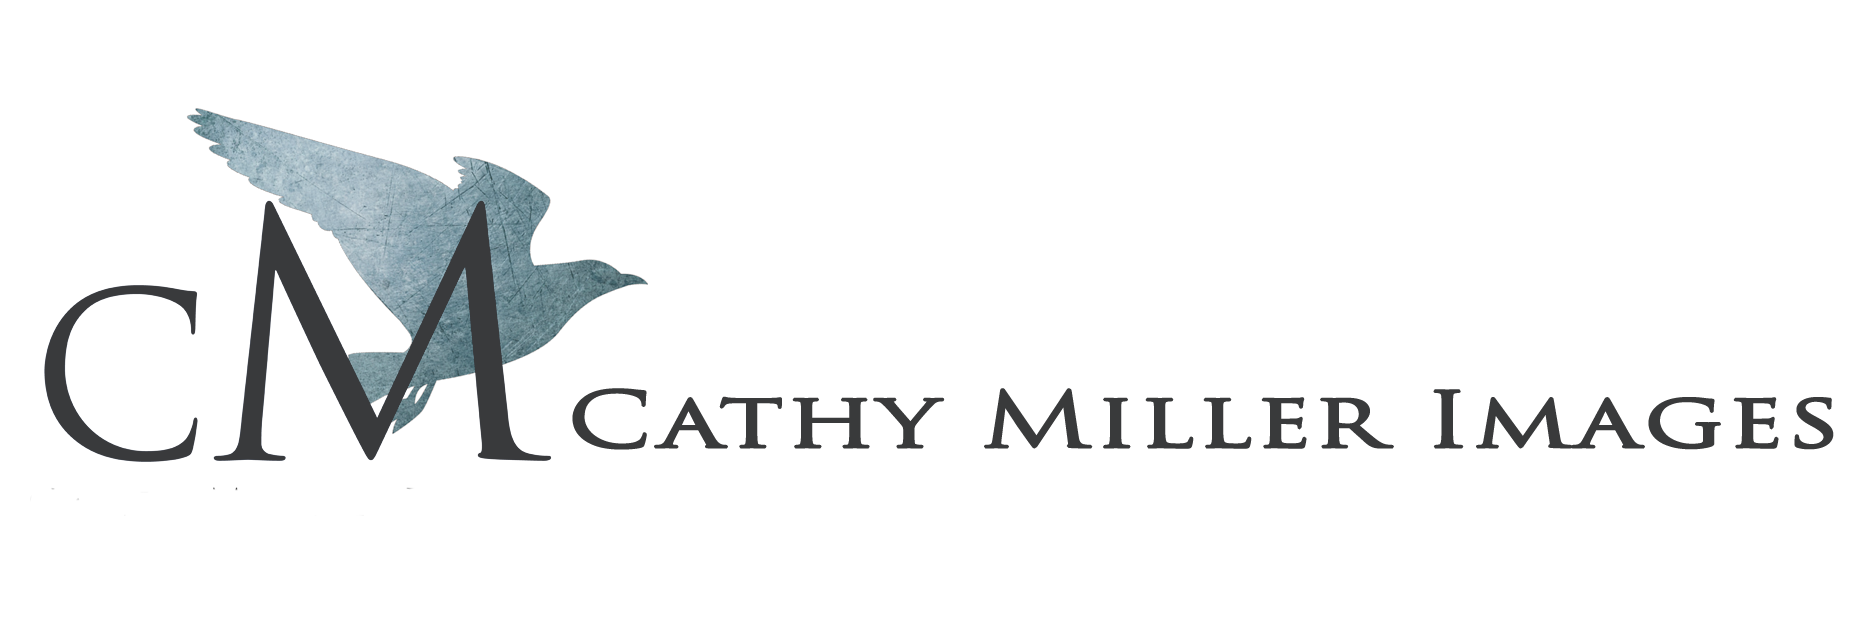 Cathy Miller Images